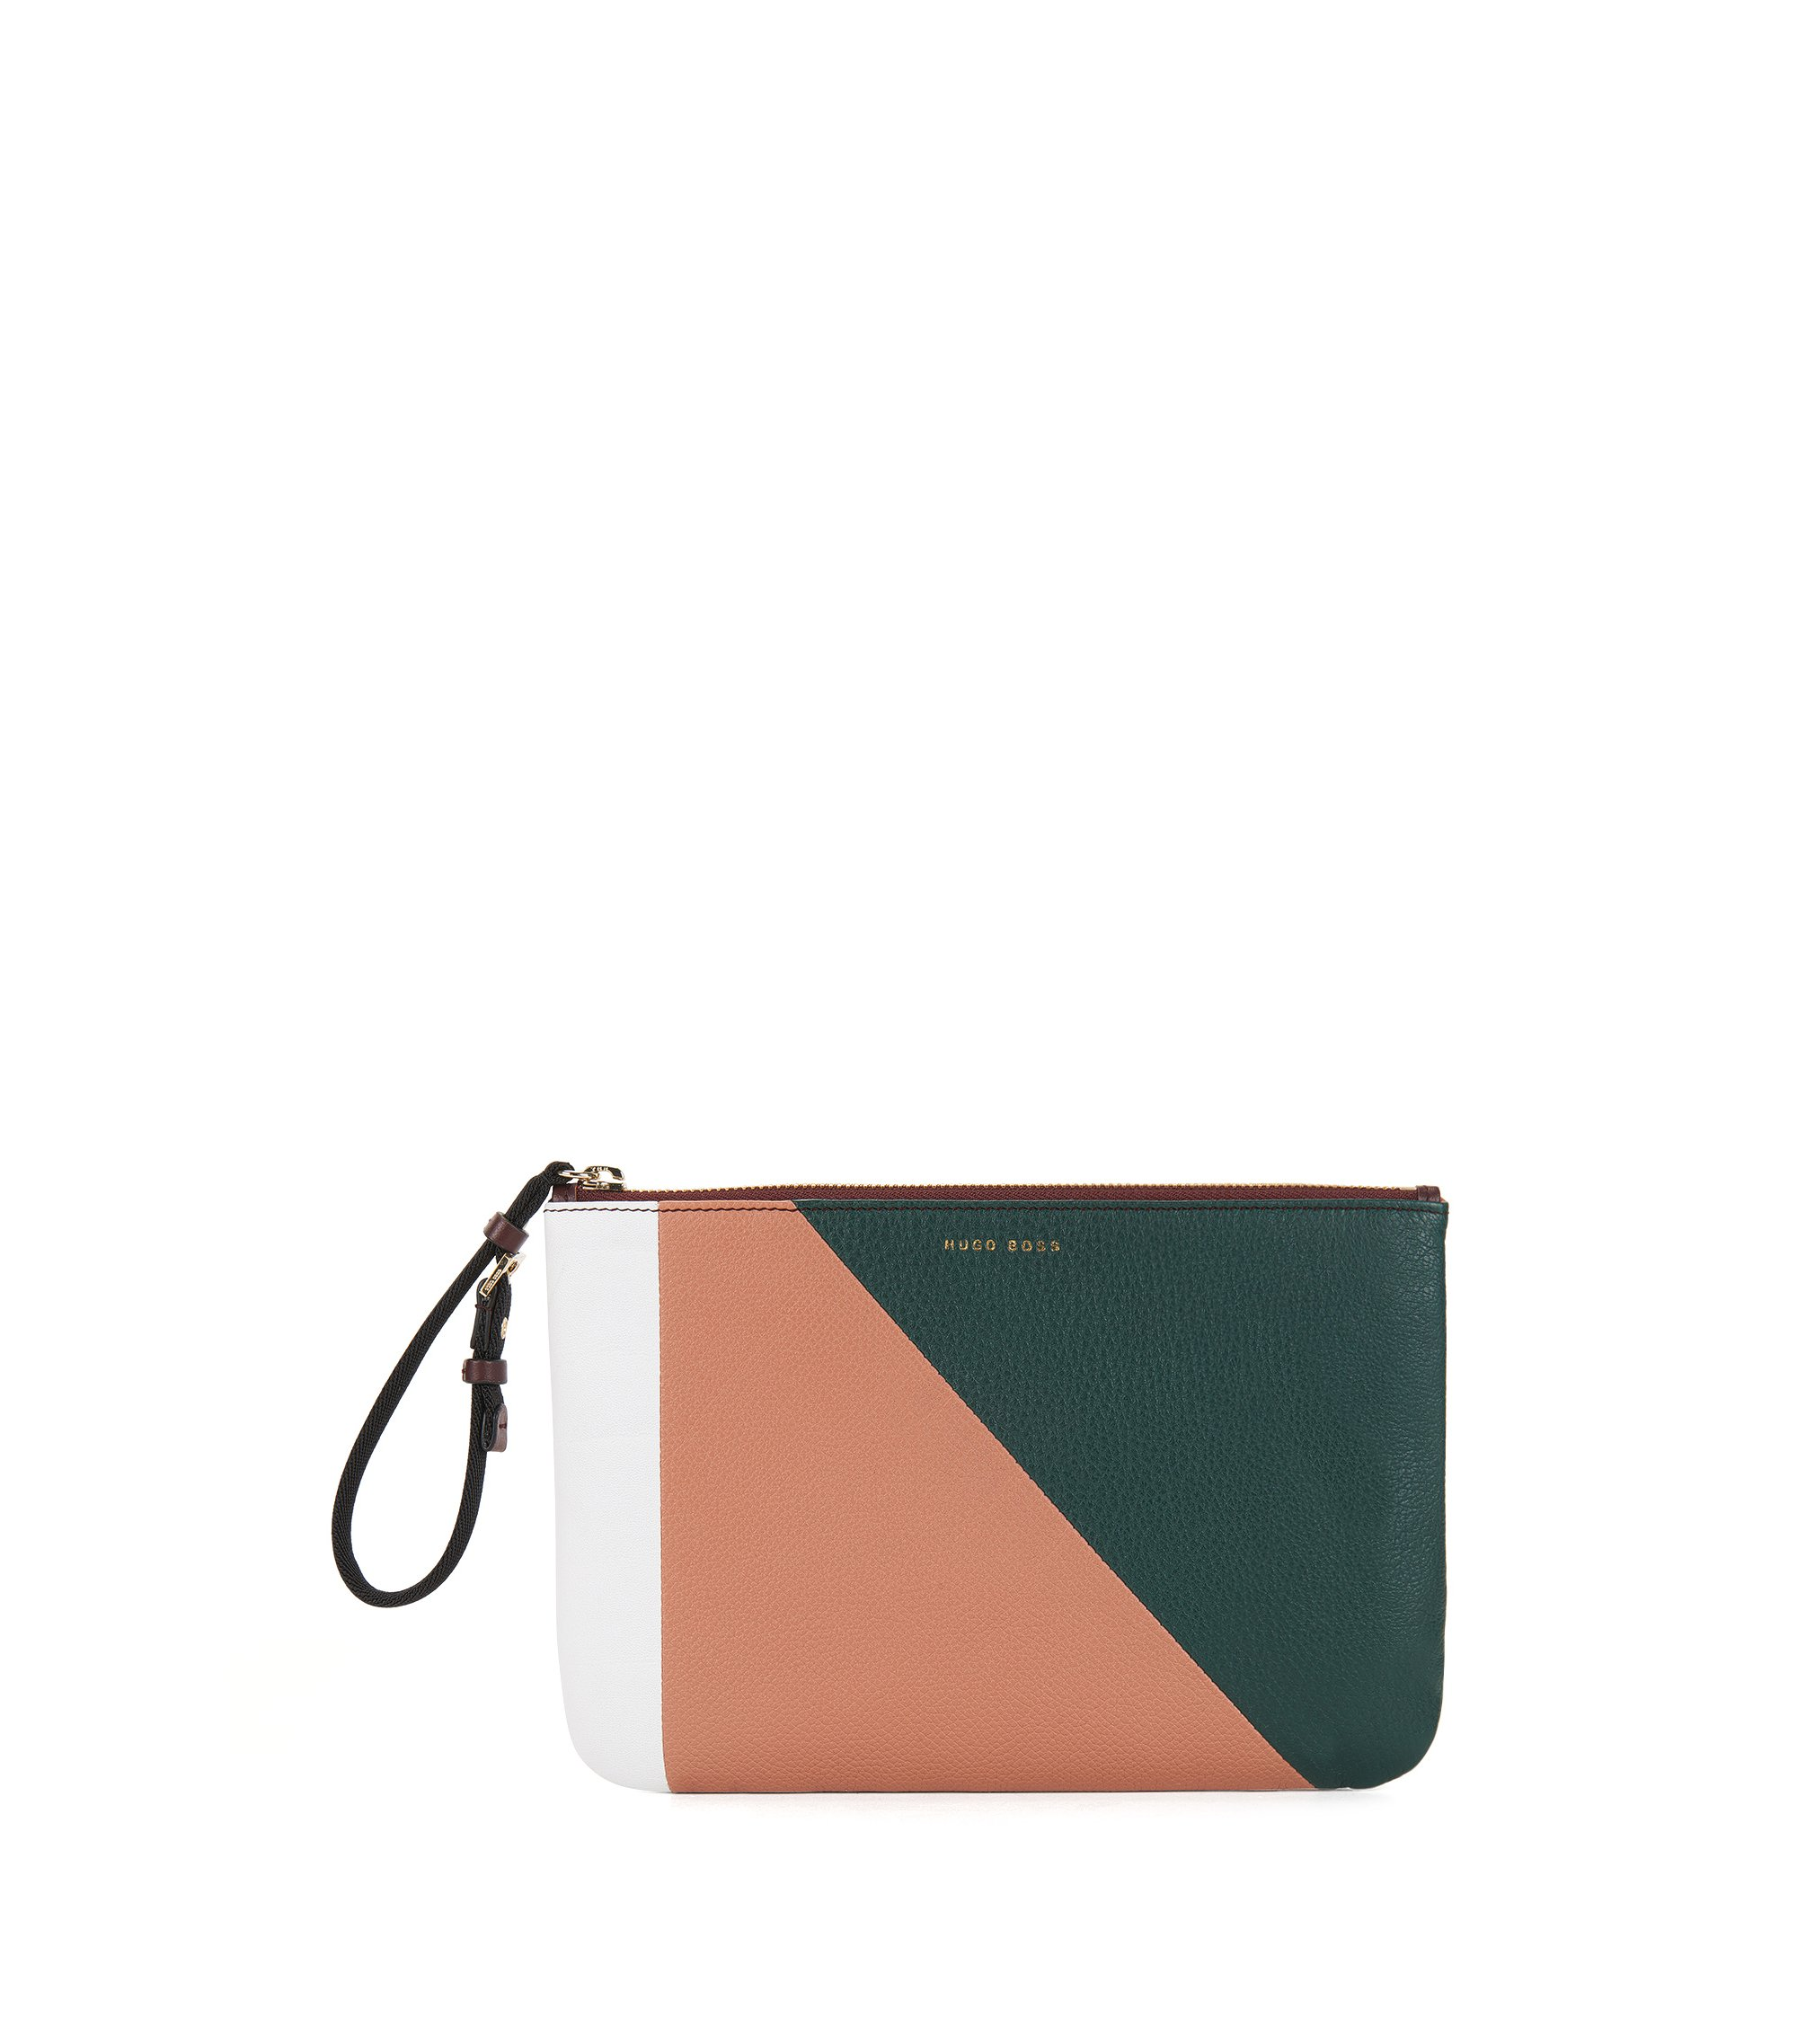 Colourblock pouch in Italian leather, Patterned